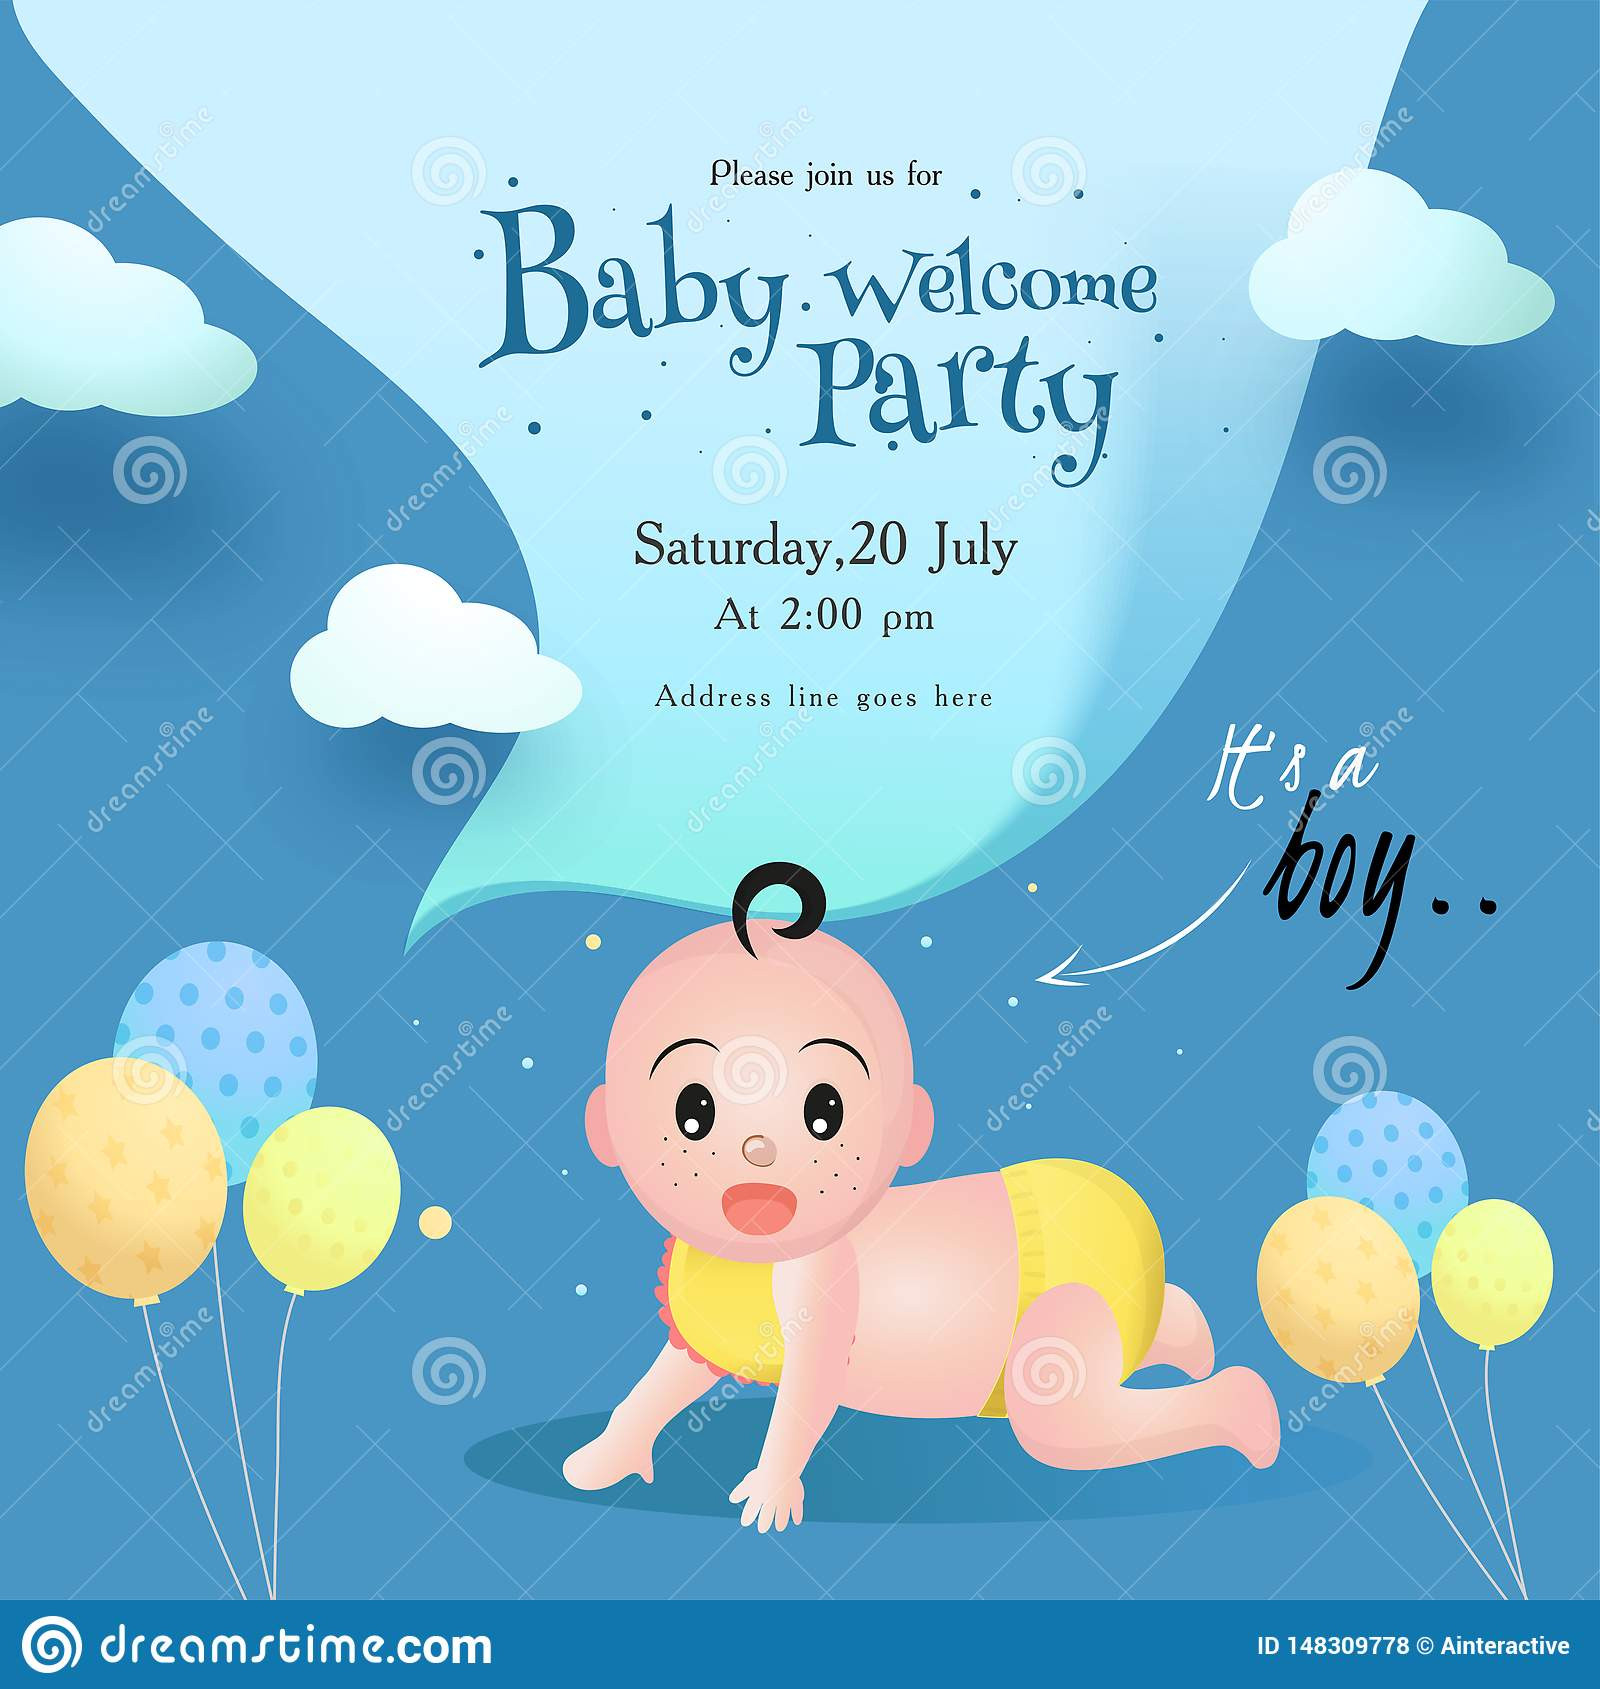 Baby Welcome Party Invitation  Baby Wel e Party Invitation Card Design With Cute Little